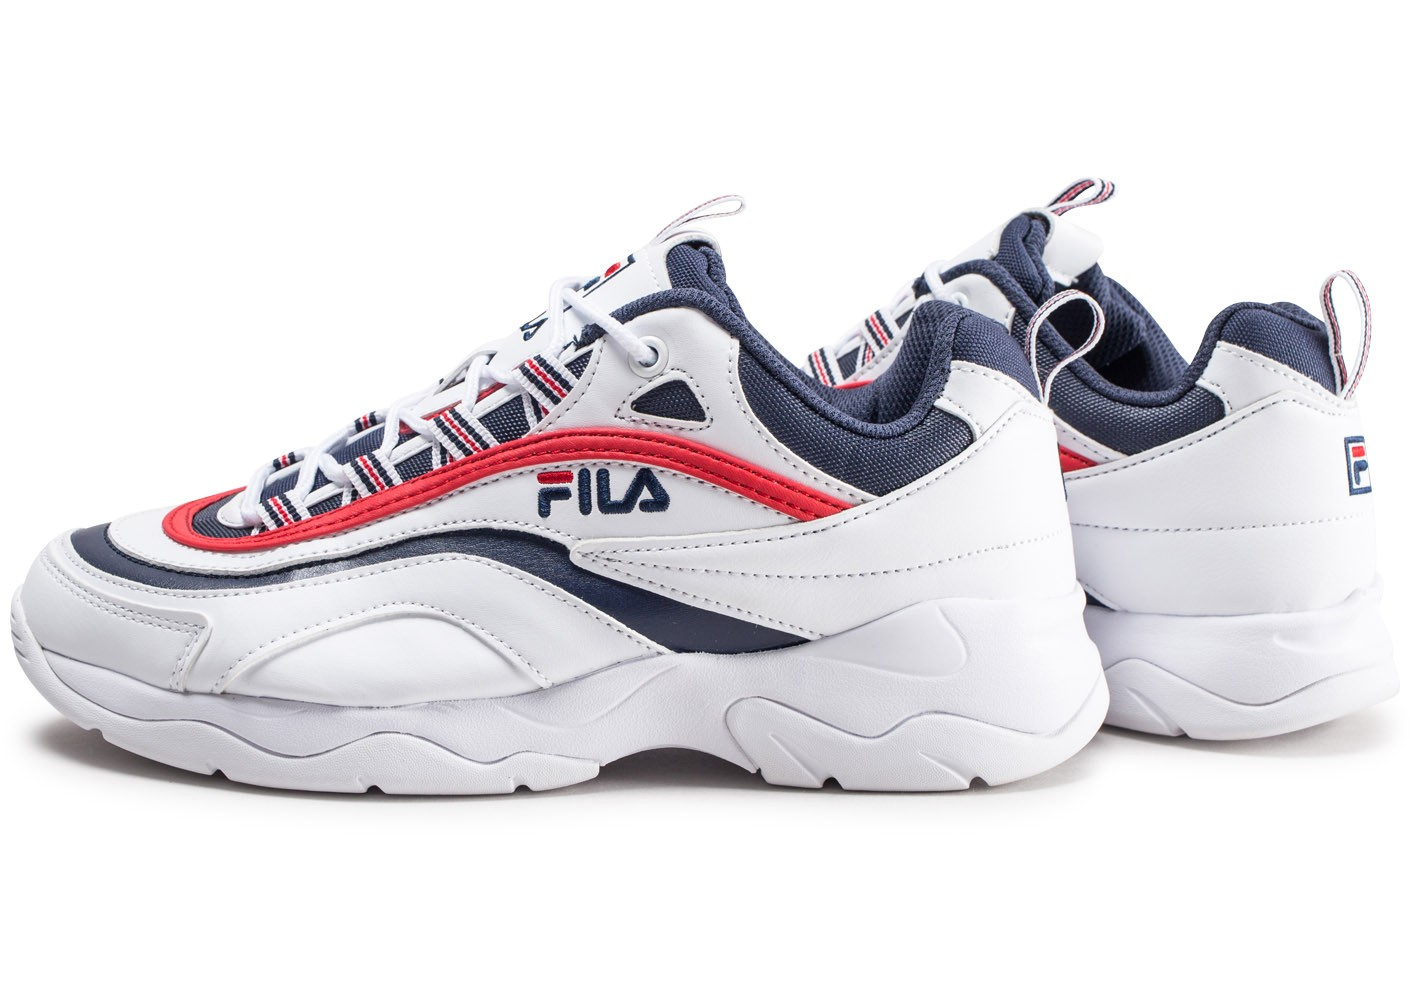 Homme Baskets Ray Bleue Et Fila Chausport Chaussures Rouge Blanche rRBqrAw